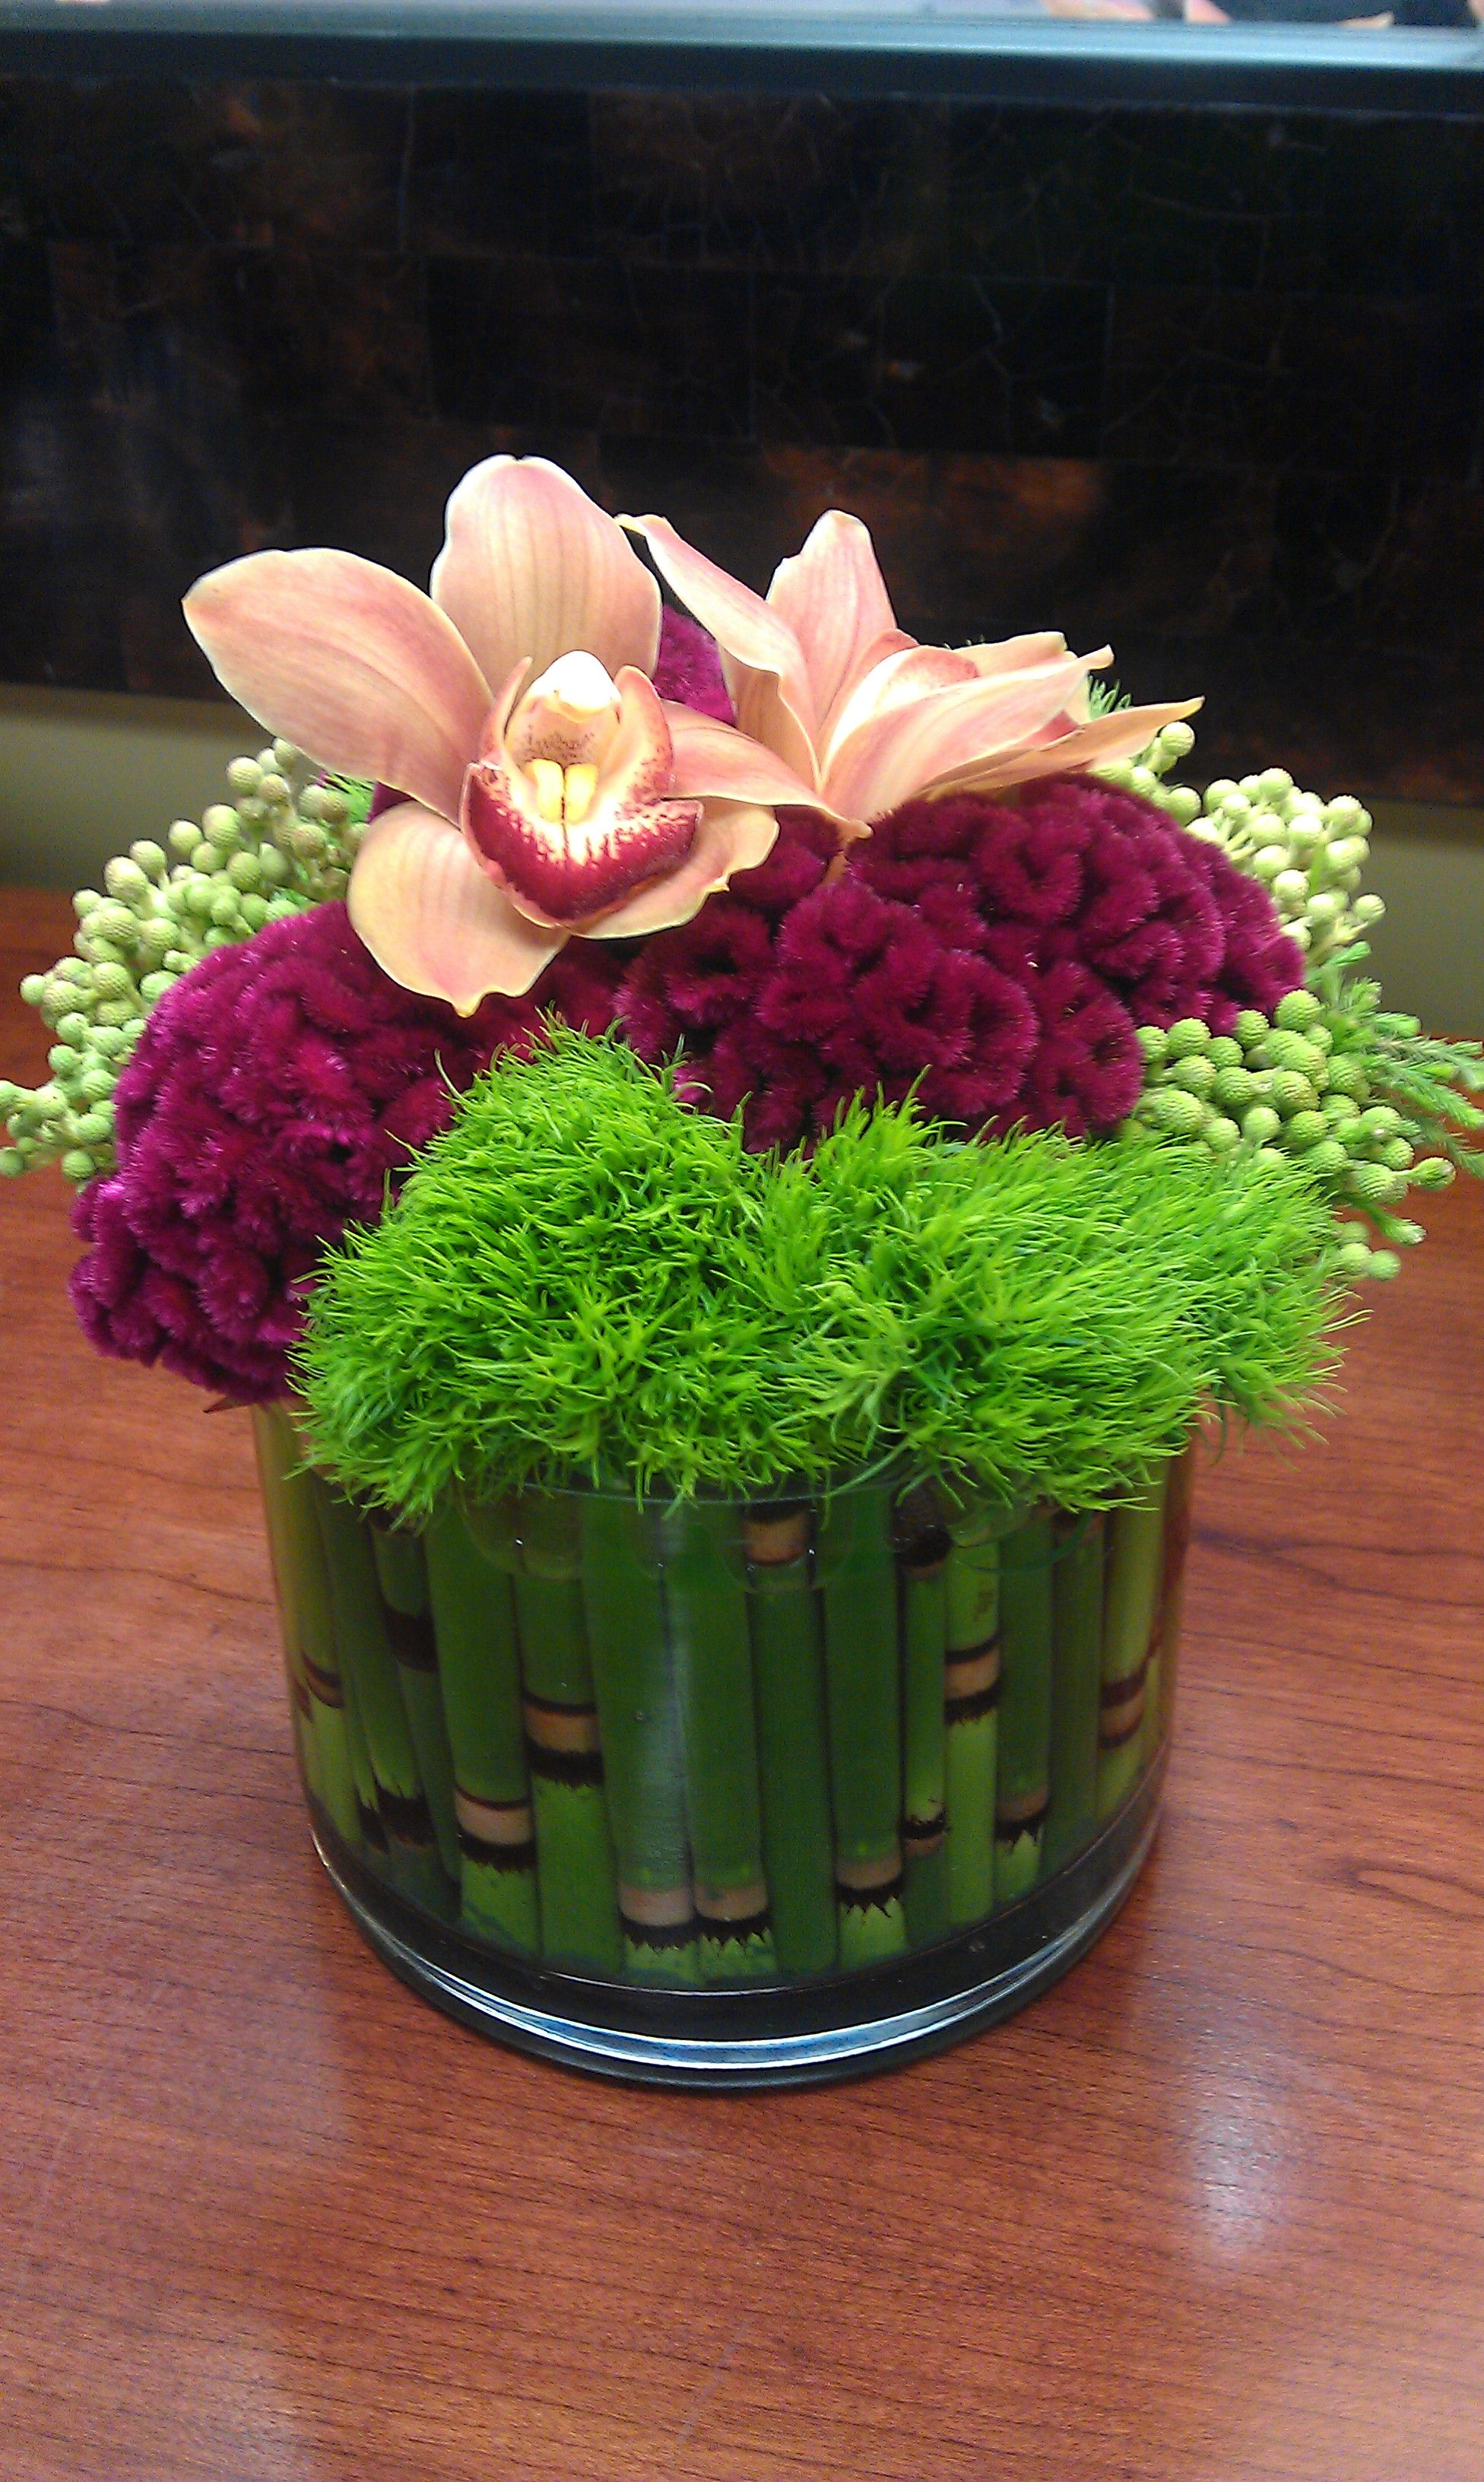 O tacho da pepa flores e jardins pinterest centerpieces love this for lowest height perfect green and purple creamier white no baby breaths love bamboo izmirmasajfo